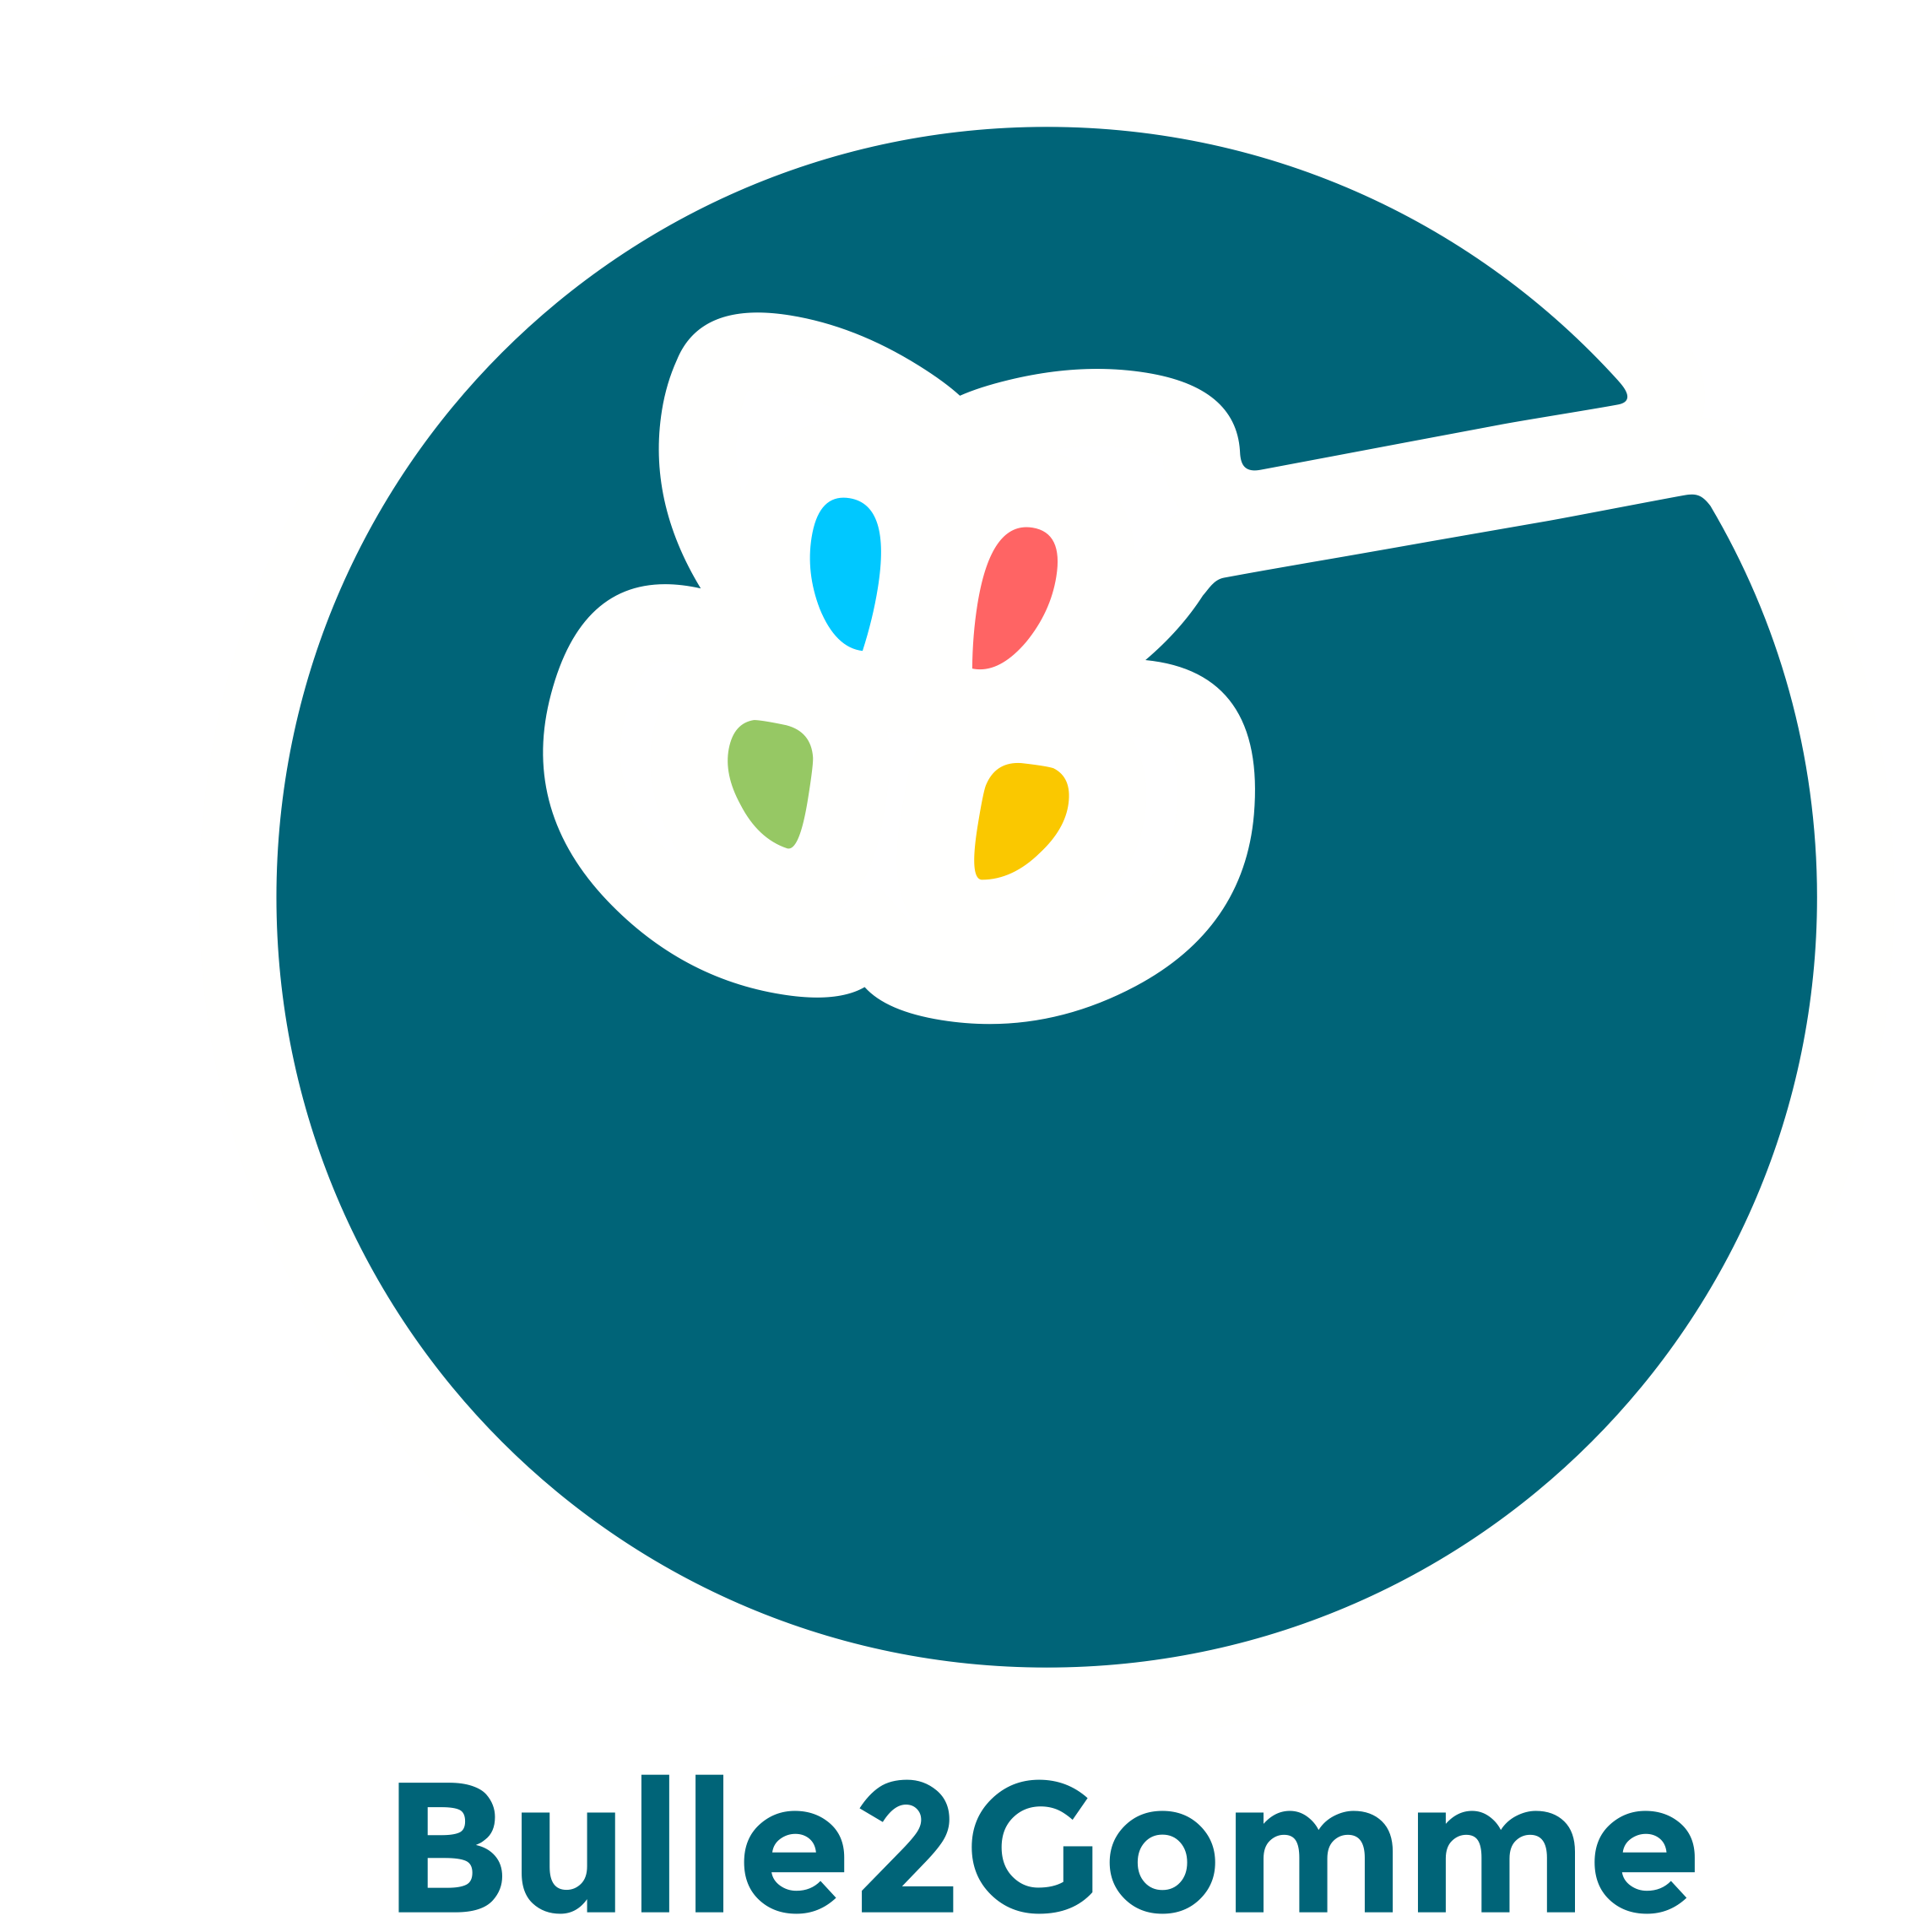 bulle2gomme